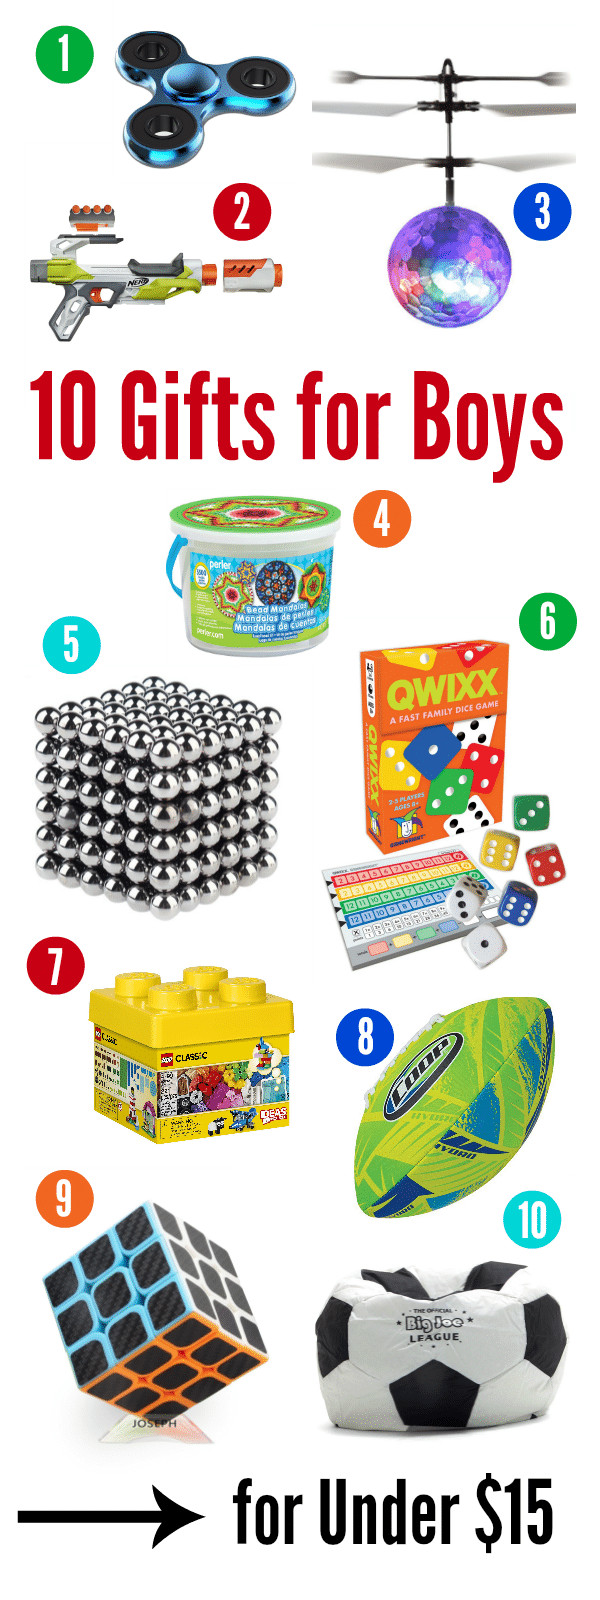 Best ideas about Best Gift Ideas For Boys . Save or Pin 10 Best Gifts for a 10 Year Old Boy for Under $15 – Fun Now.